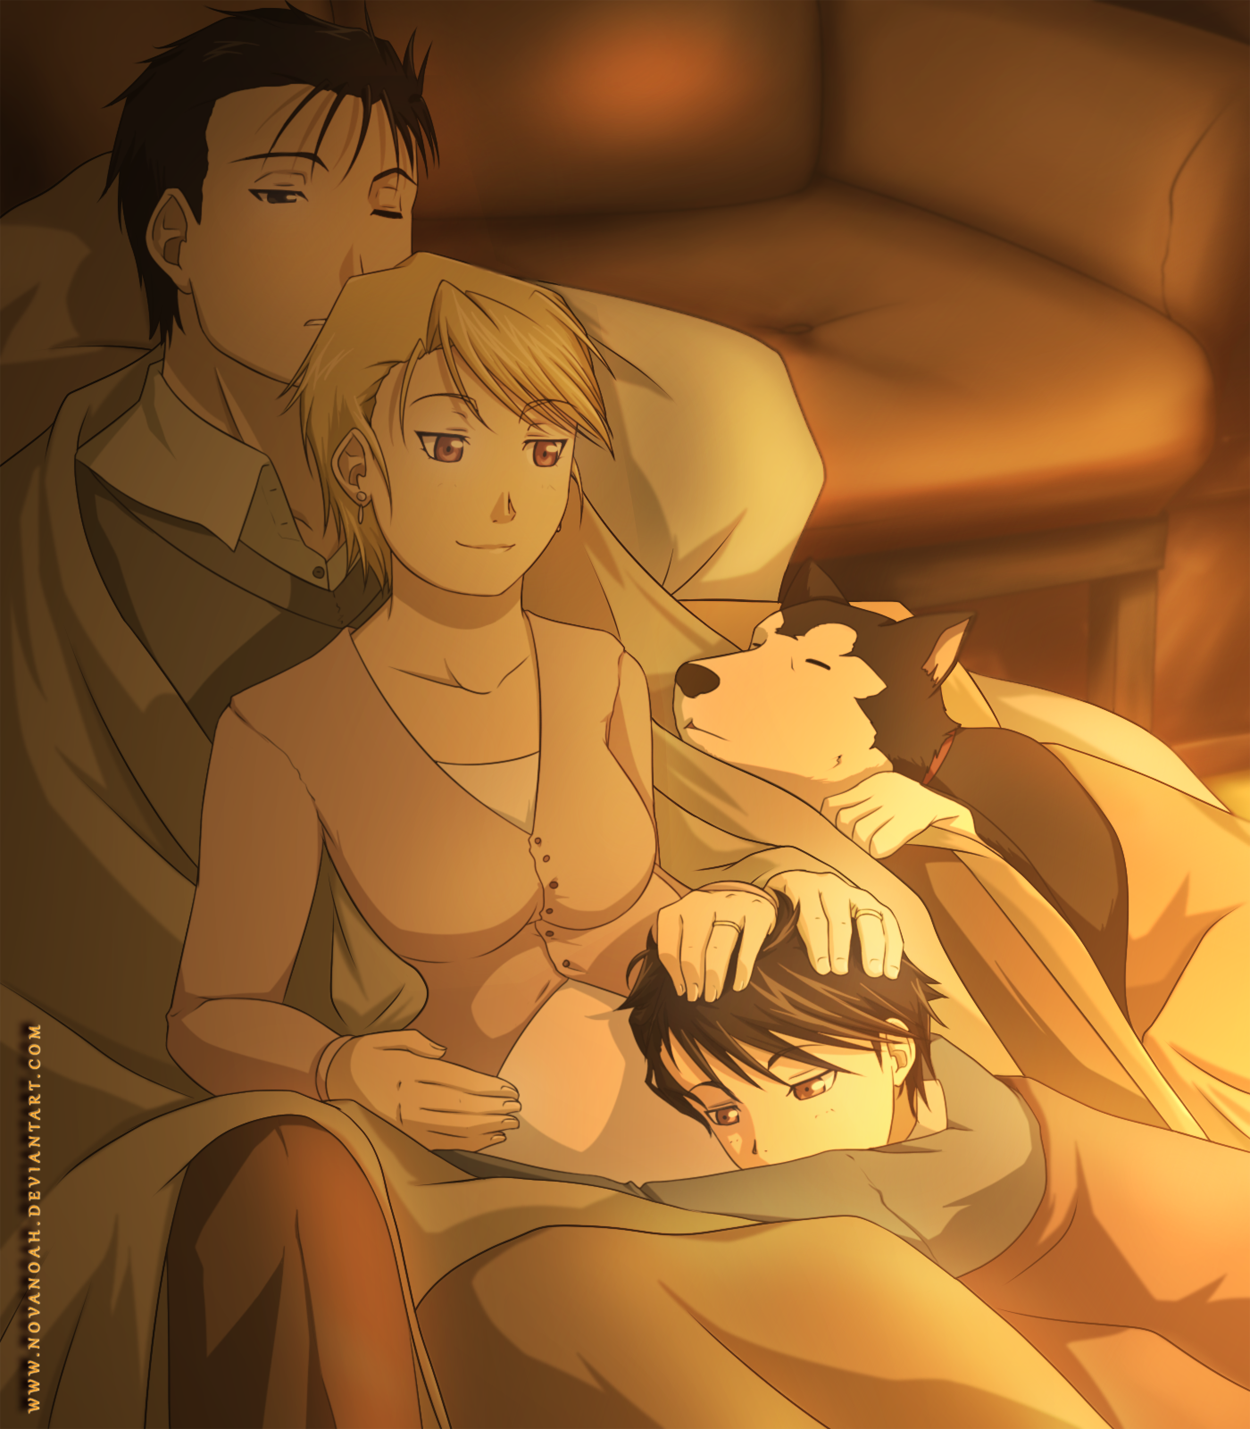 family__s_warmth_by_novanoah-d57fewu.png